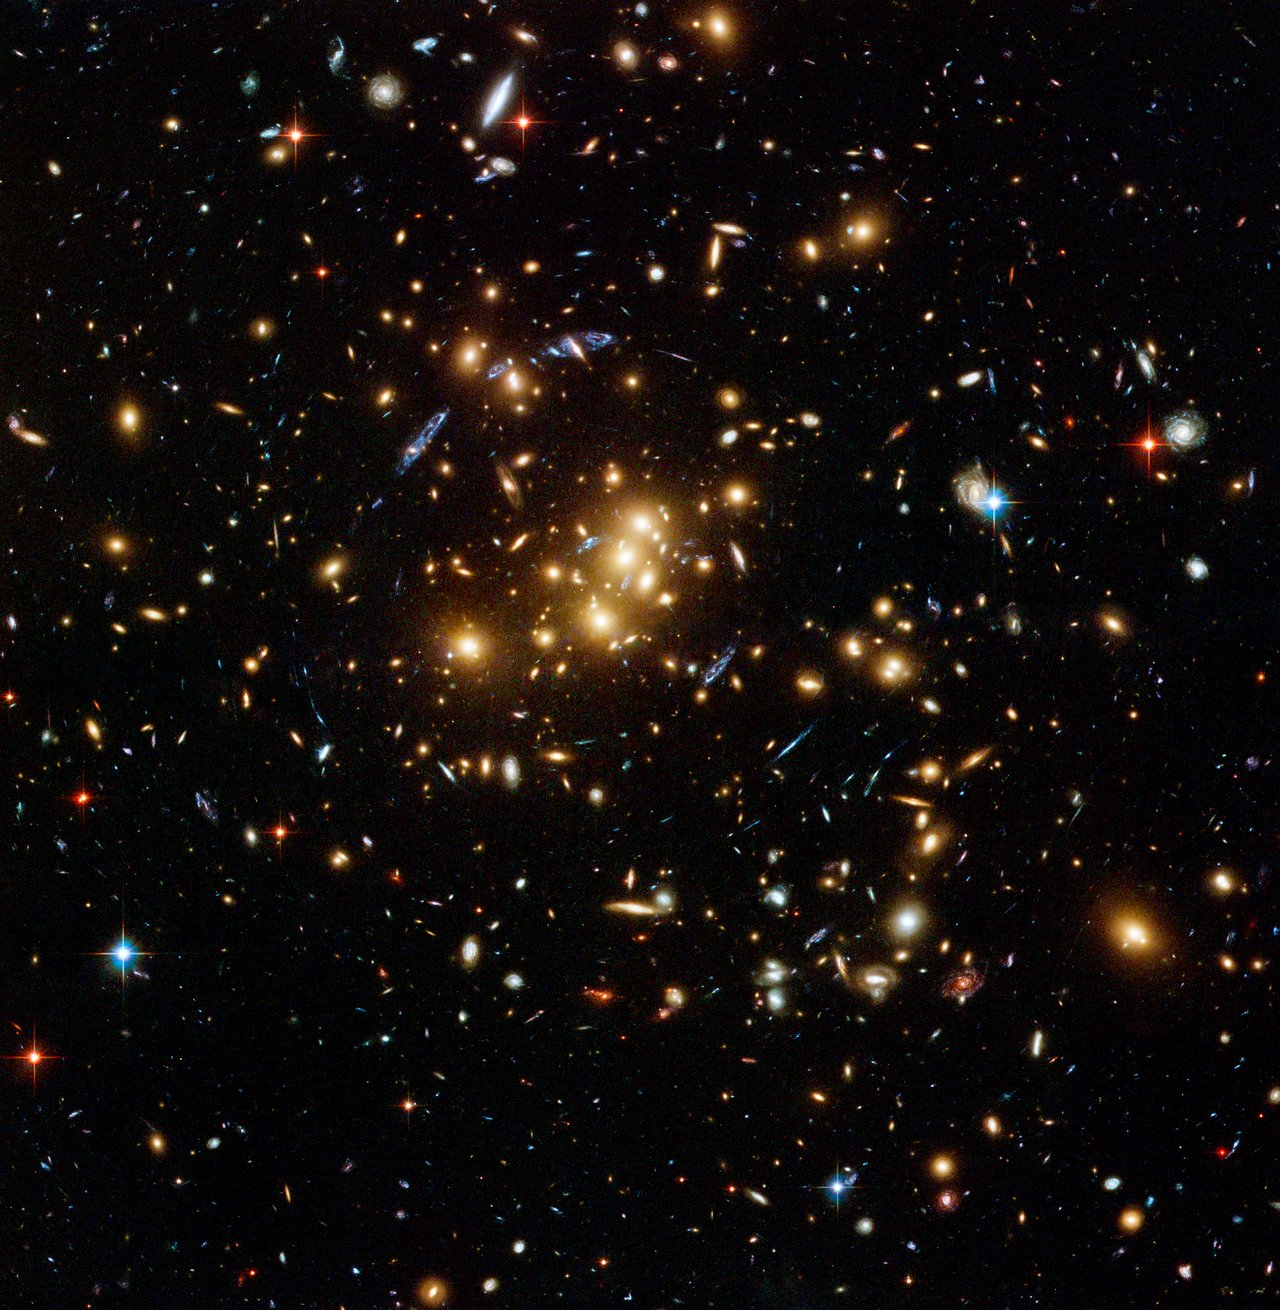 galaxies hubble telescope discovers - photo #18